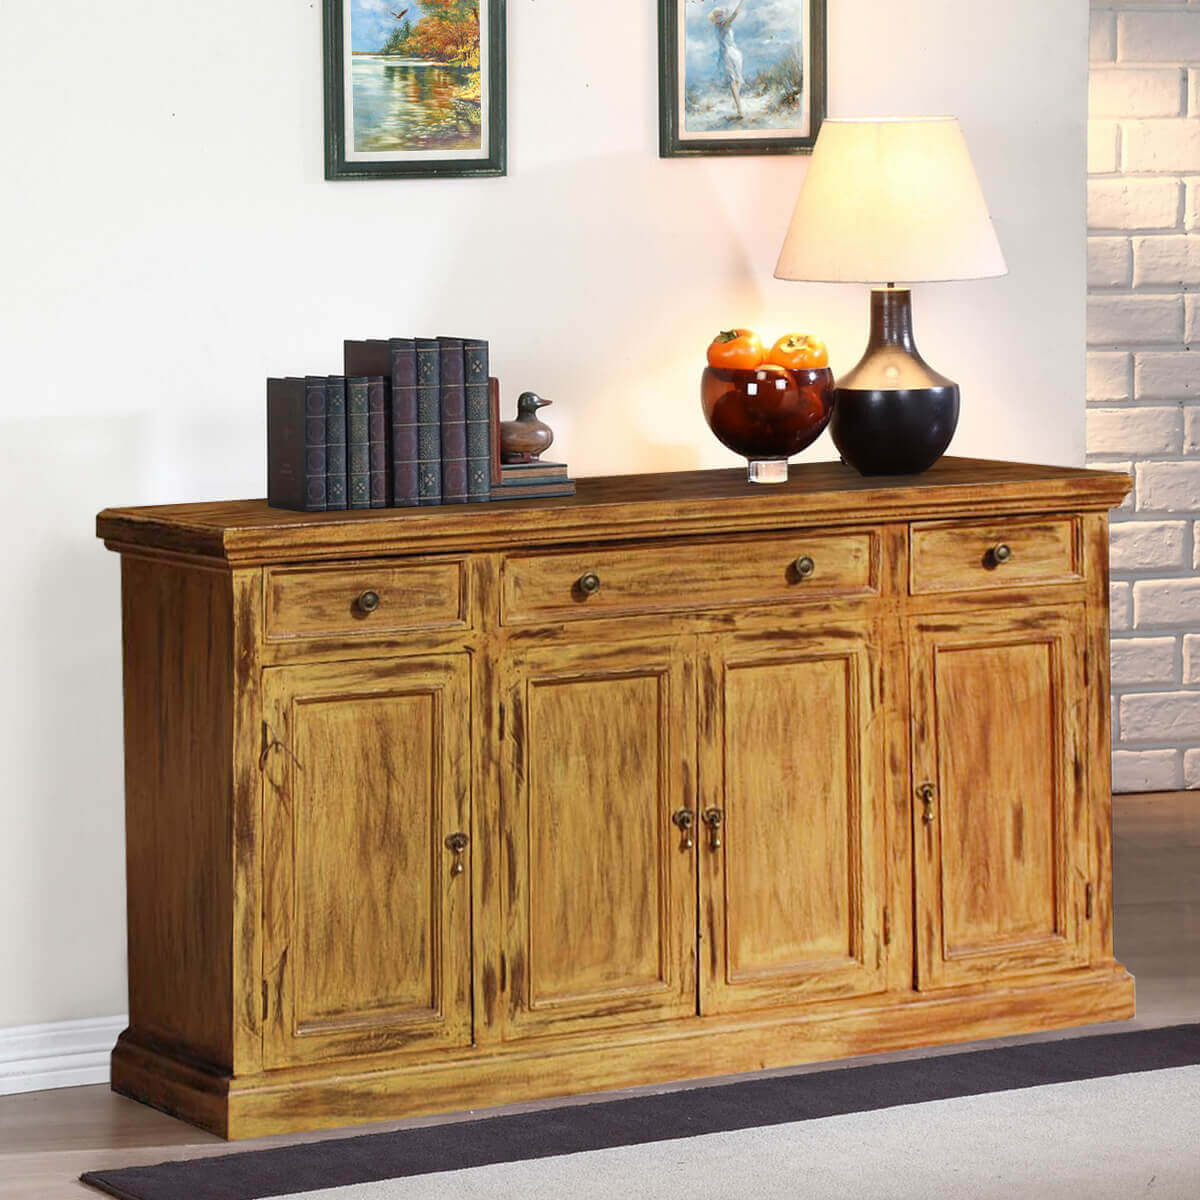 Courtdale Rustic Solid Wood 4 Door 3 Drawer Large Sideboard Cabinet With Regard To Current Courtdale Sideboards (#6 of 20)